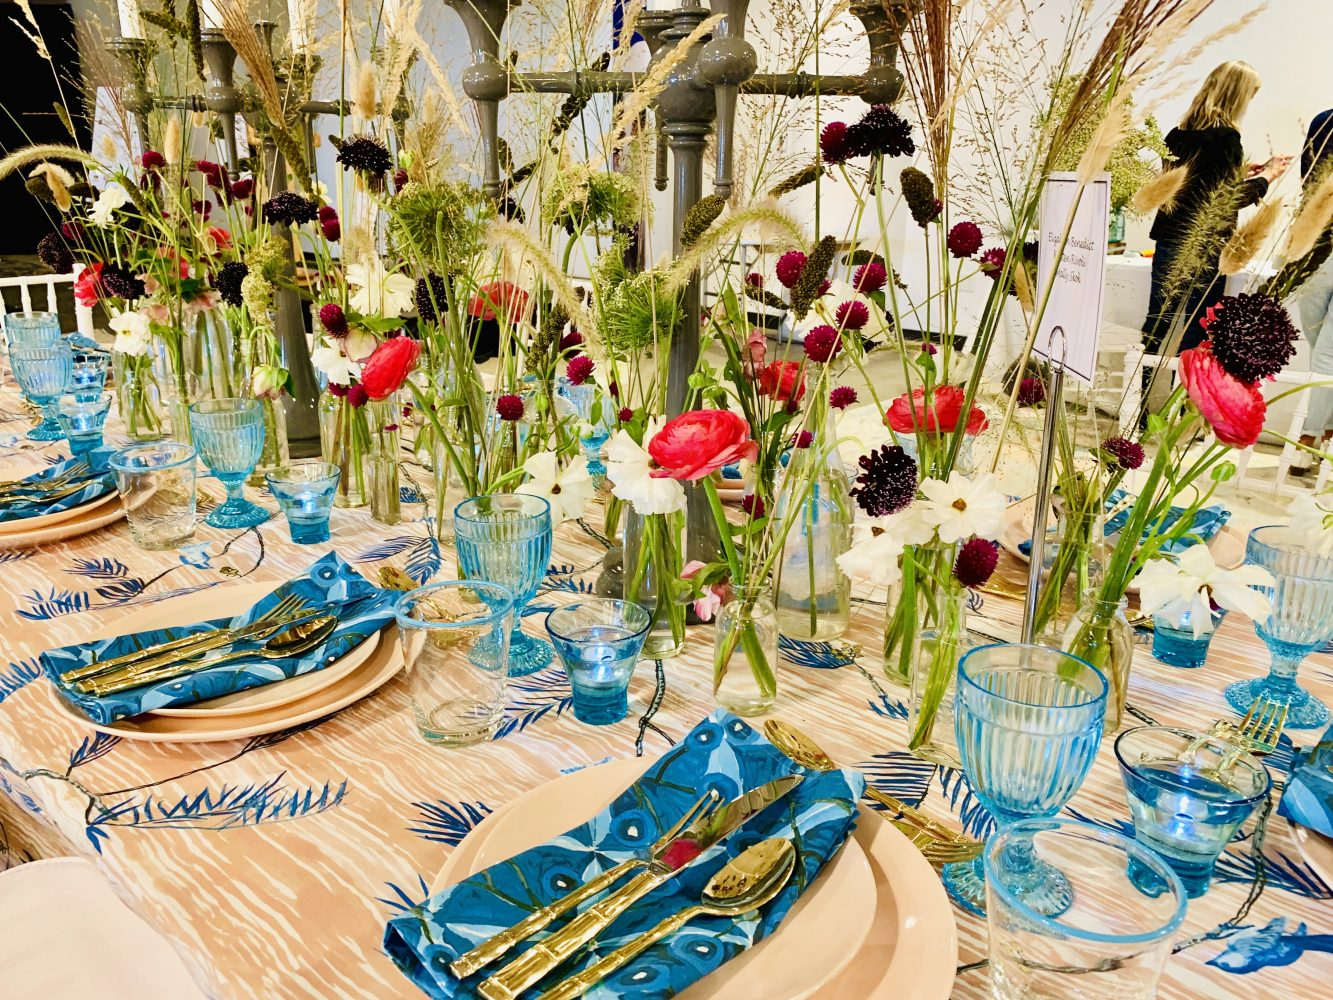 Designer Founders Table Heading Home to Dinner 2019 tablescape closeup with flowers